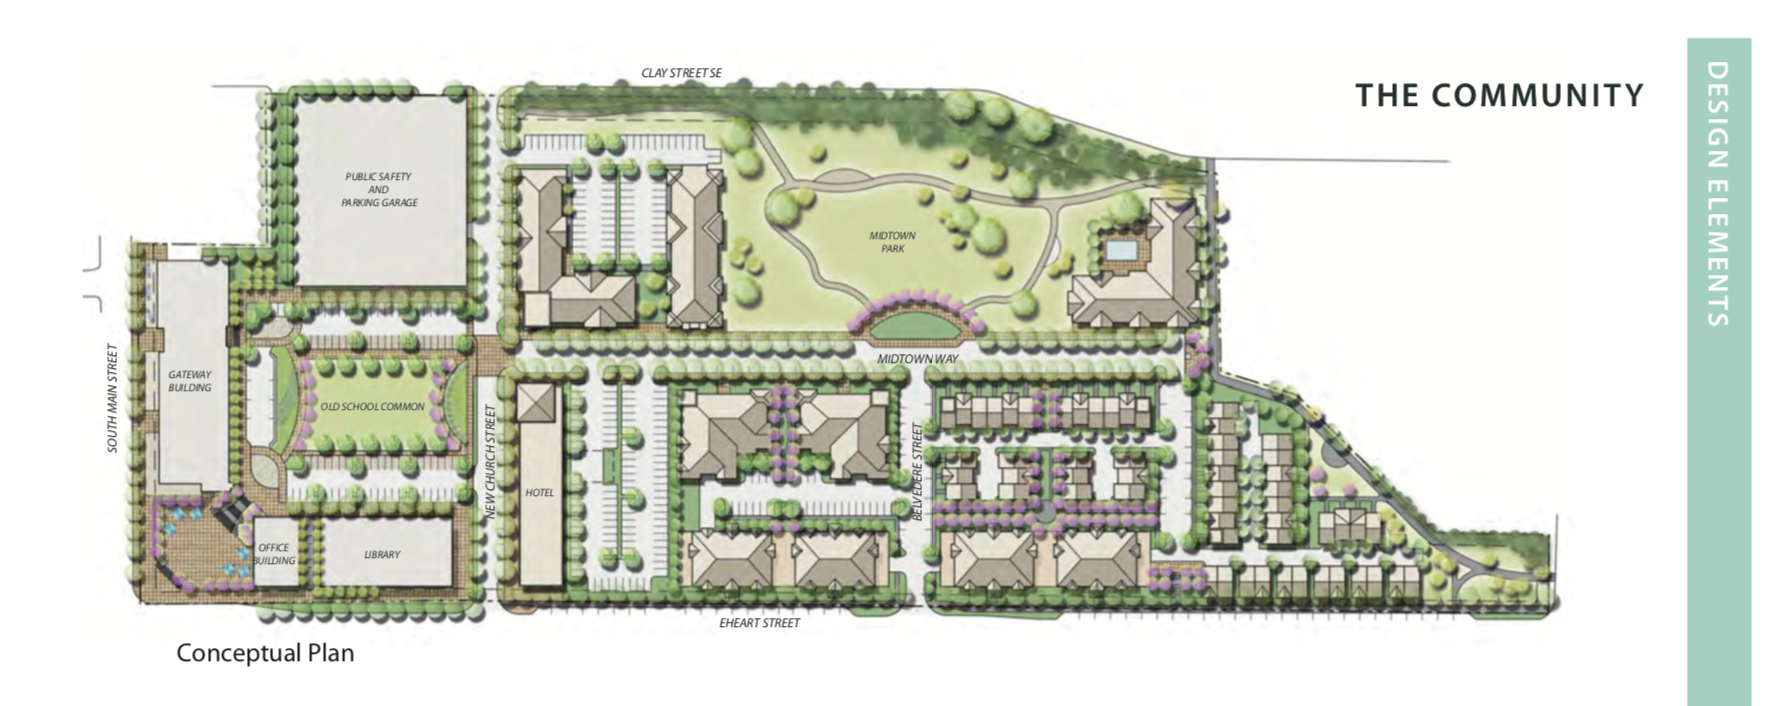 An image of the conceptual plan